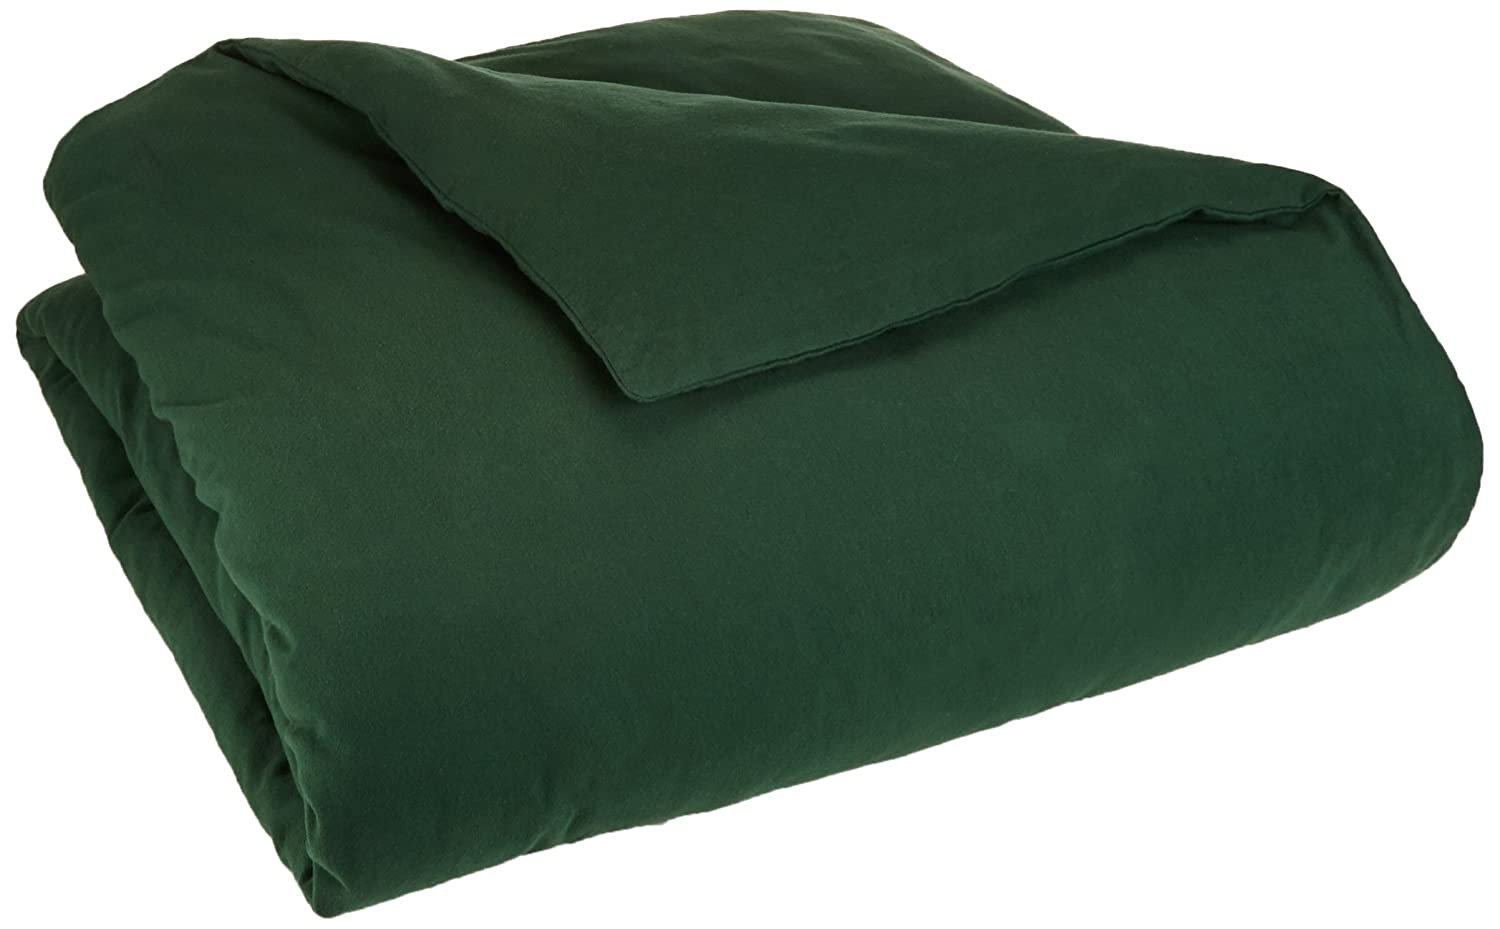 Flannel Duvet Cover - Full/Queen, Forest Green